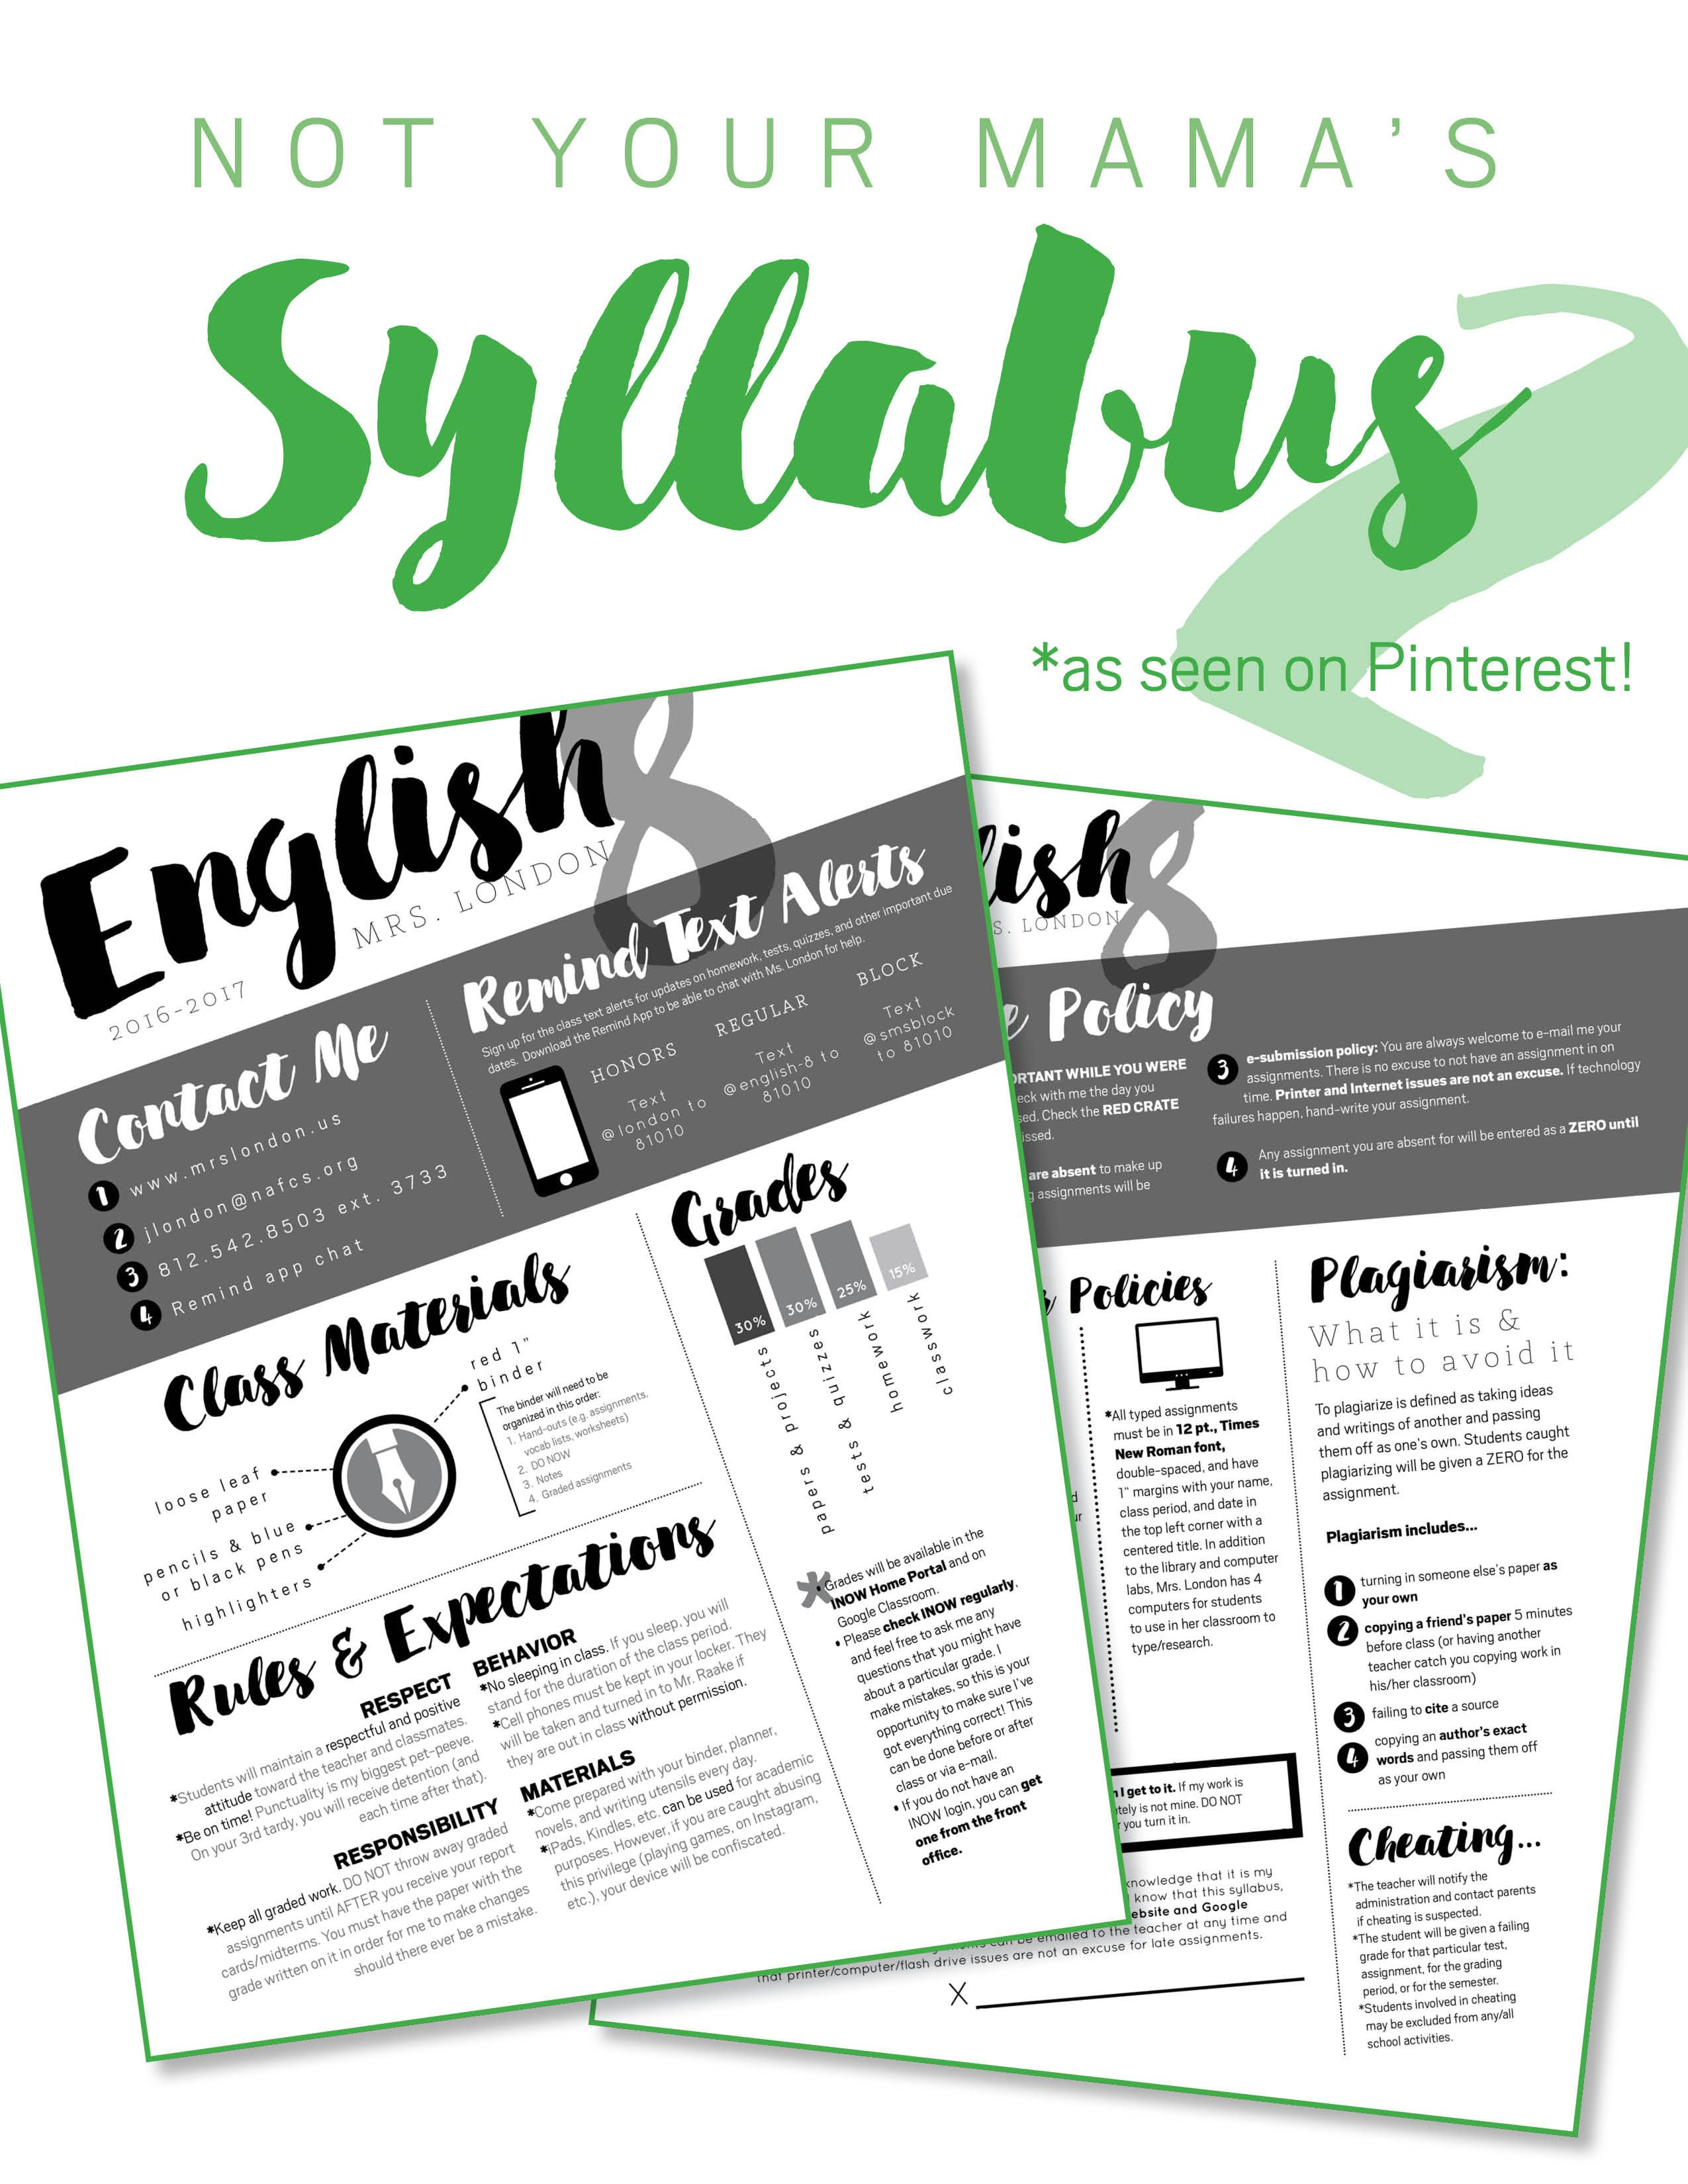 Nontraditional Syllabus Template #2 (software: InDesign/LucidPress ...